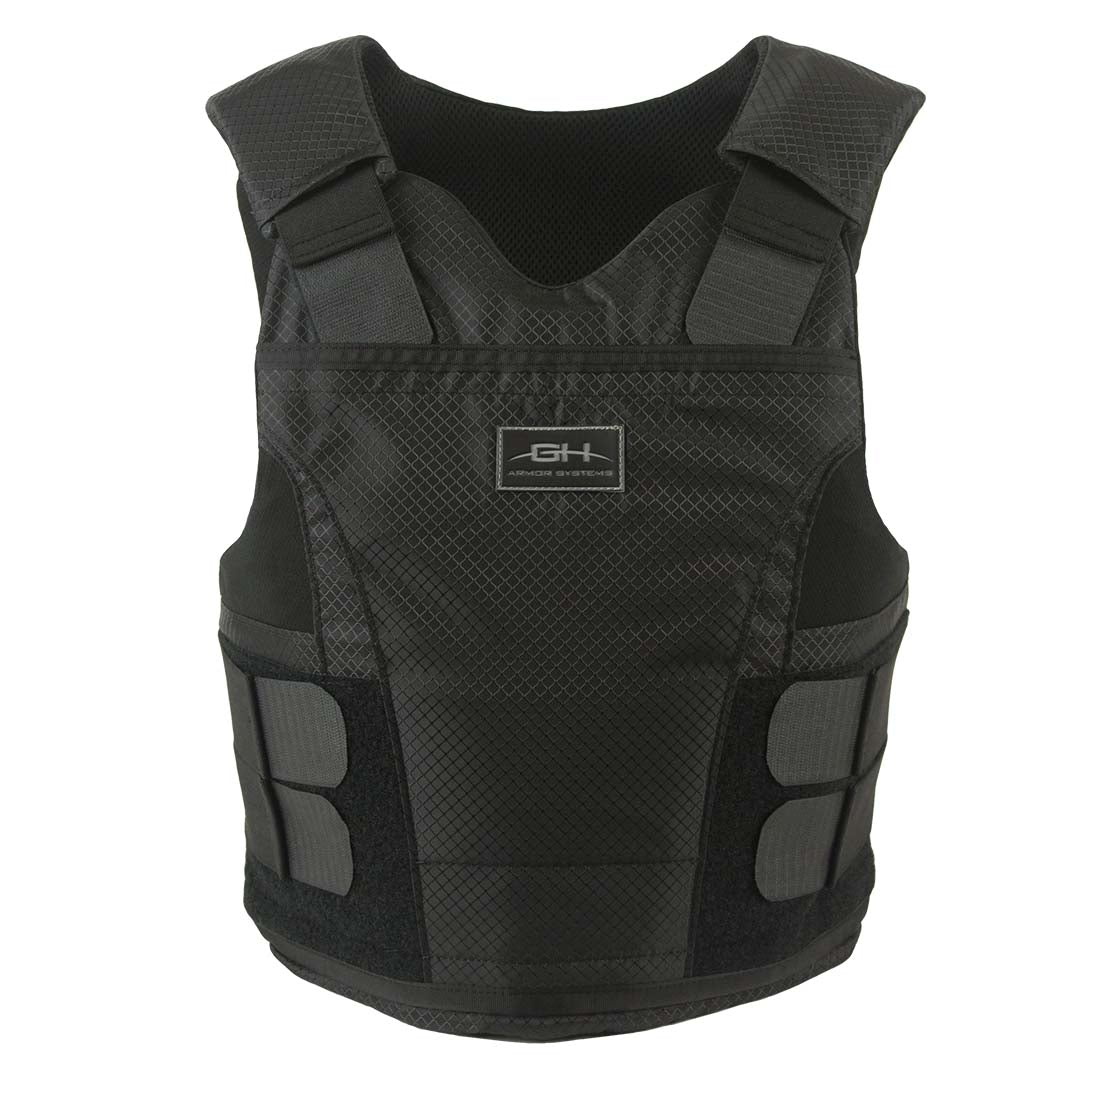 GH Armor Orion Concealable Carrier [OCC]